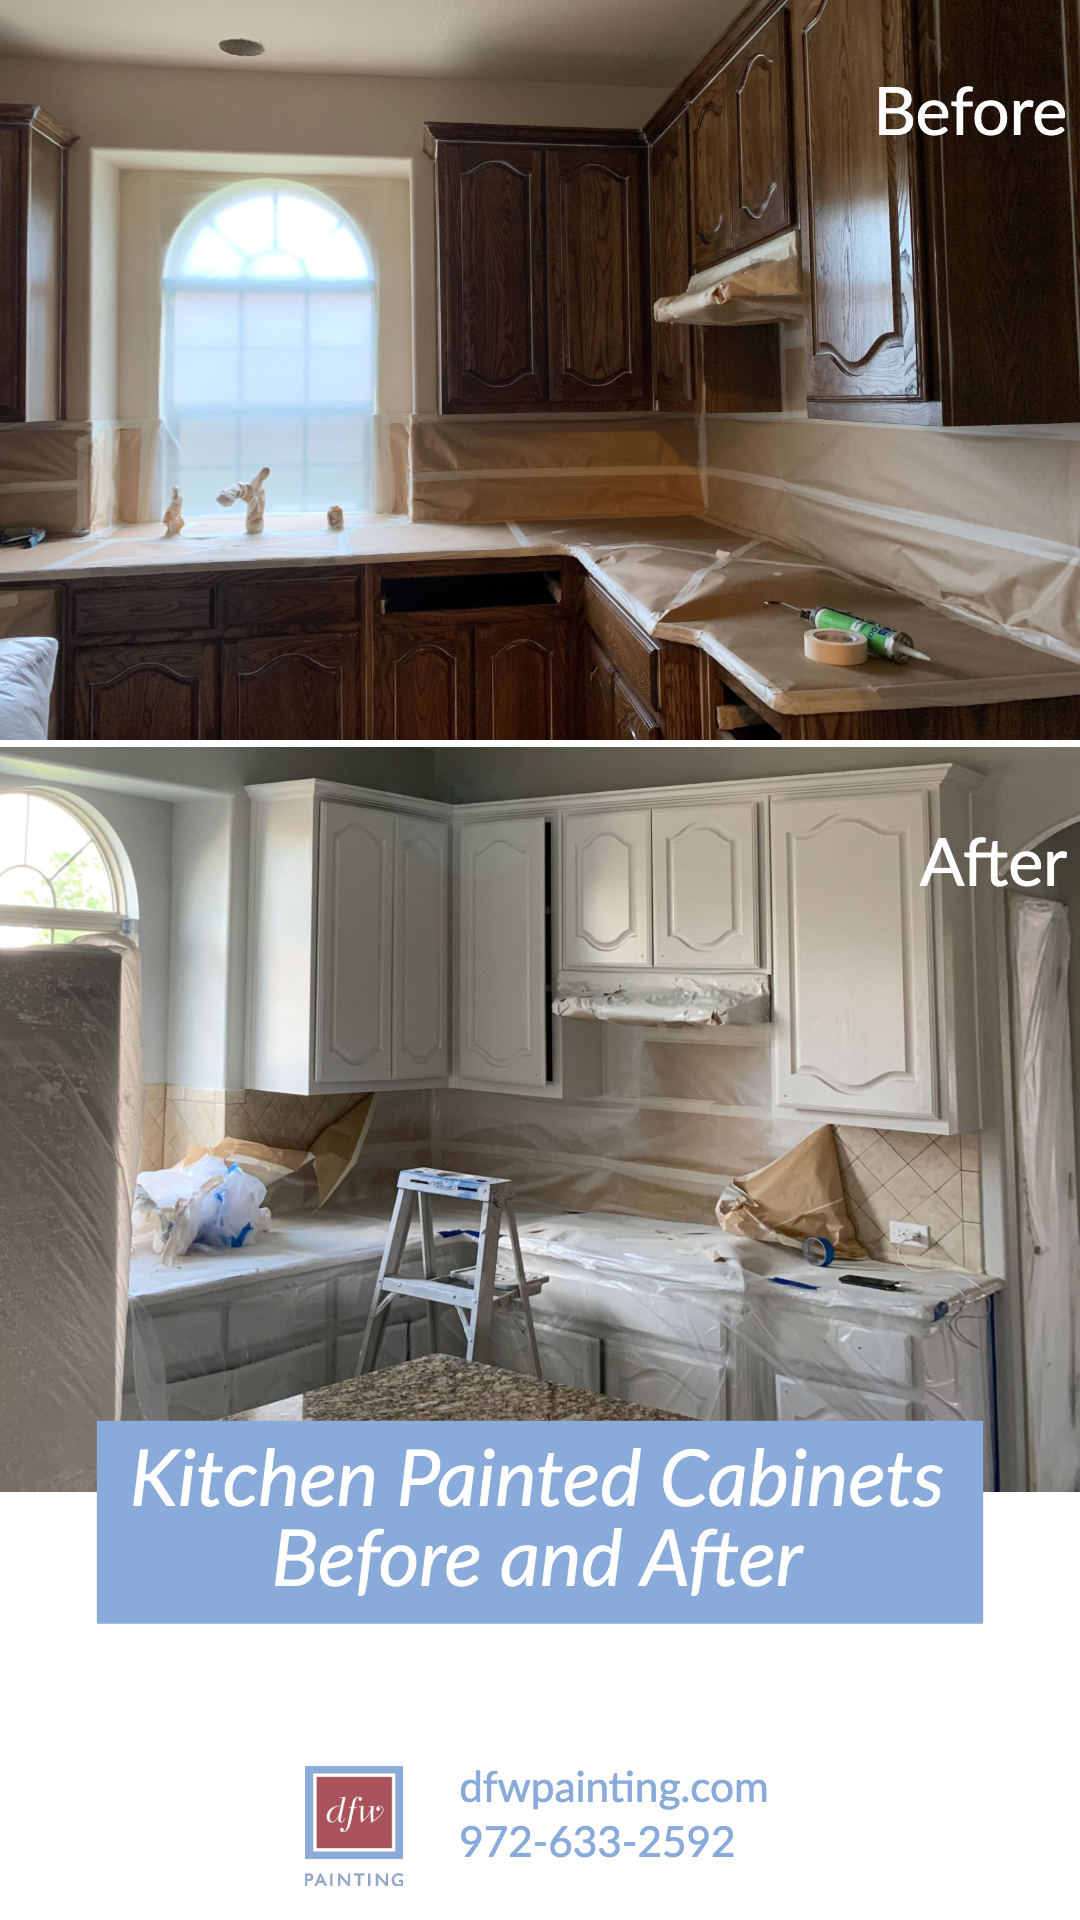 Kitchen Cabinet Refresh Painting Kitchen Cabinets Dfw Painting In 2020 Painting Kitchen Cabinets Refinishing Cabinets Cabinet